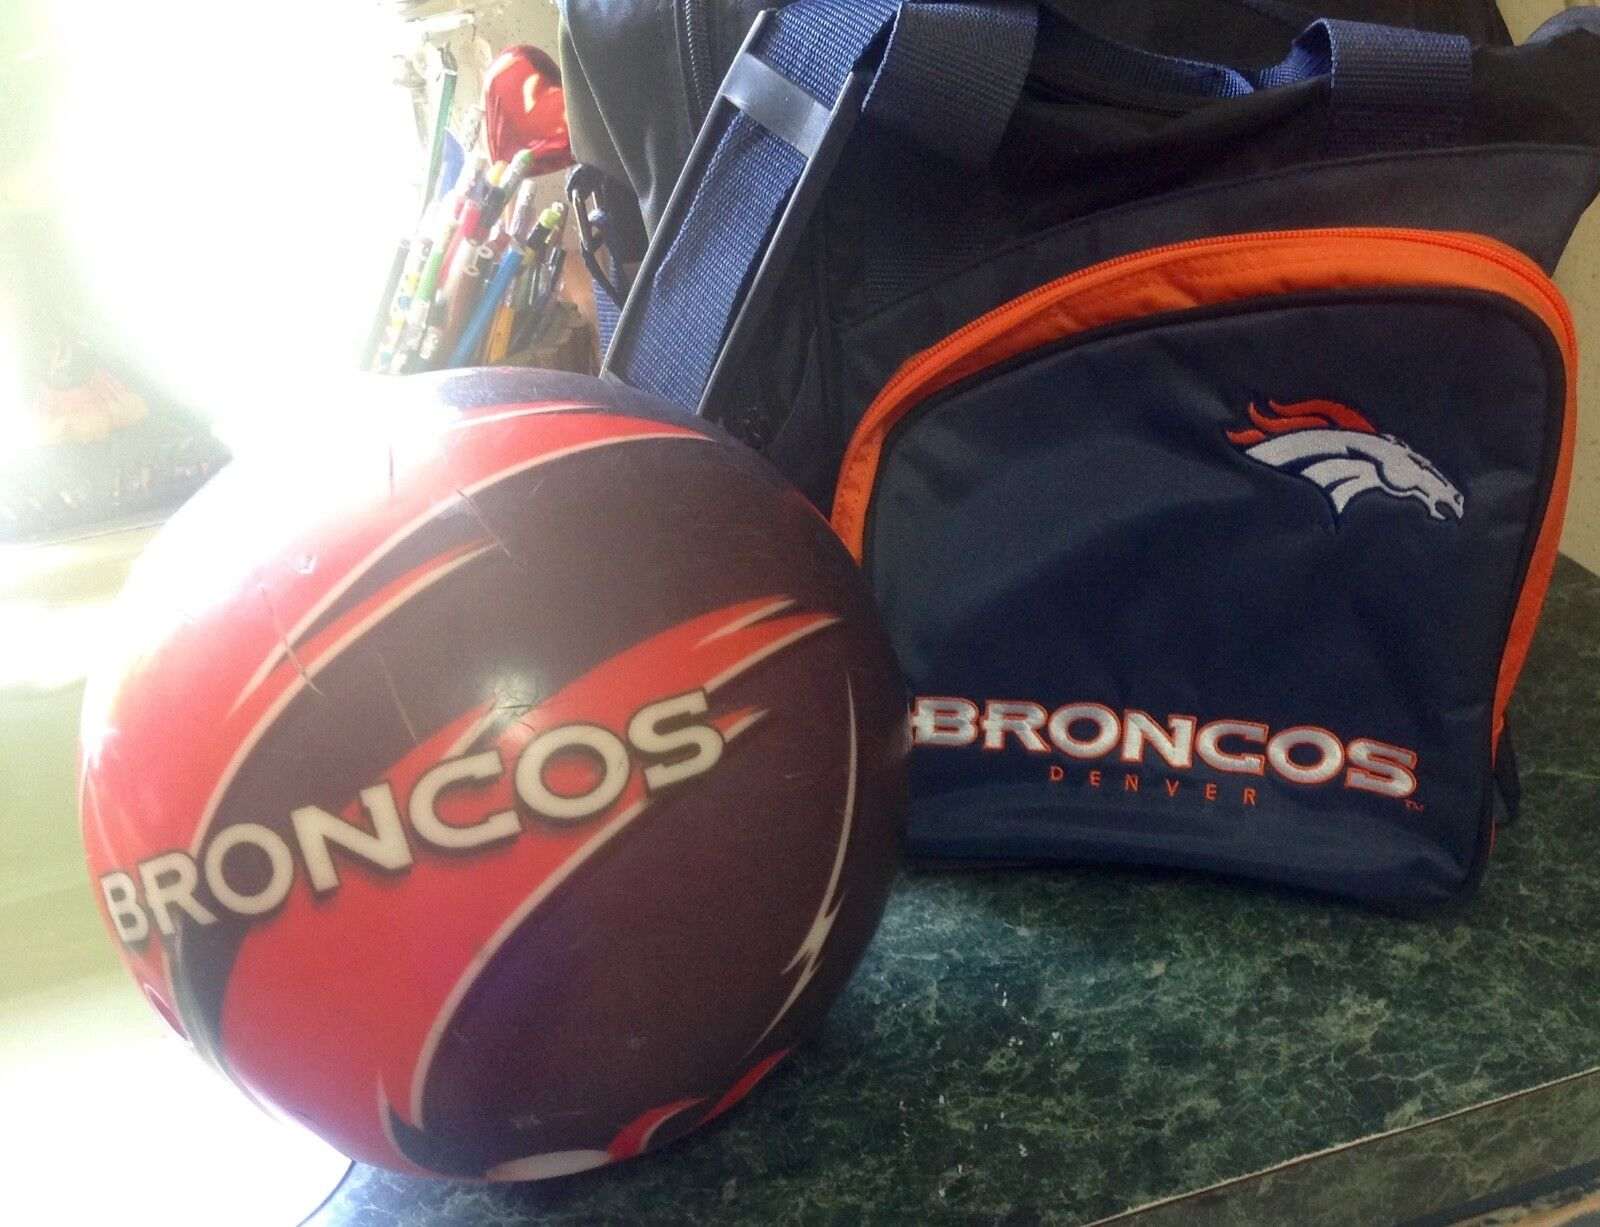 Denver Broncos NFL Viz-A-Ball Bowling Ball + Broncos Bowling Bag Set RARE